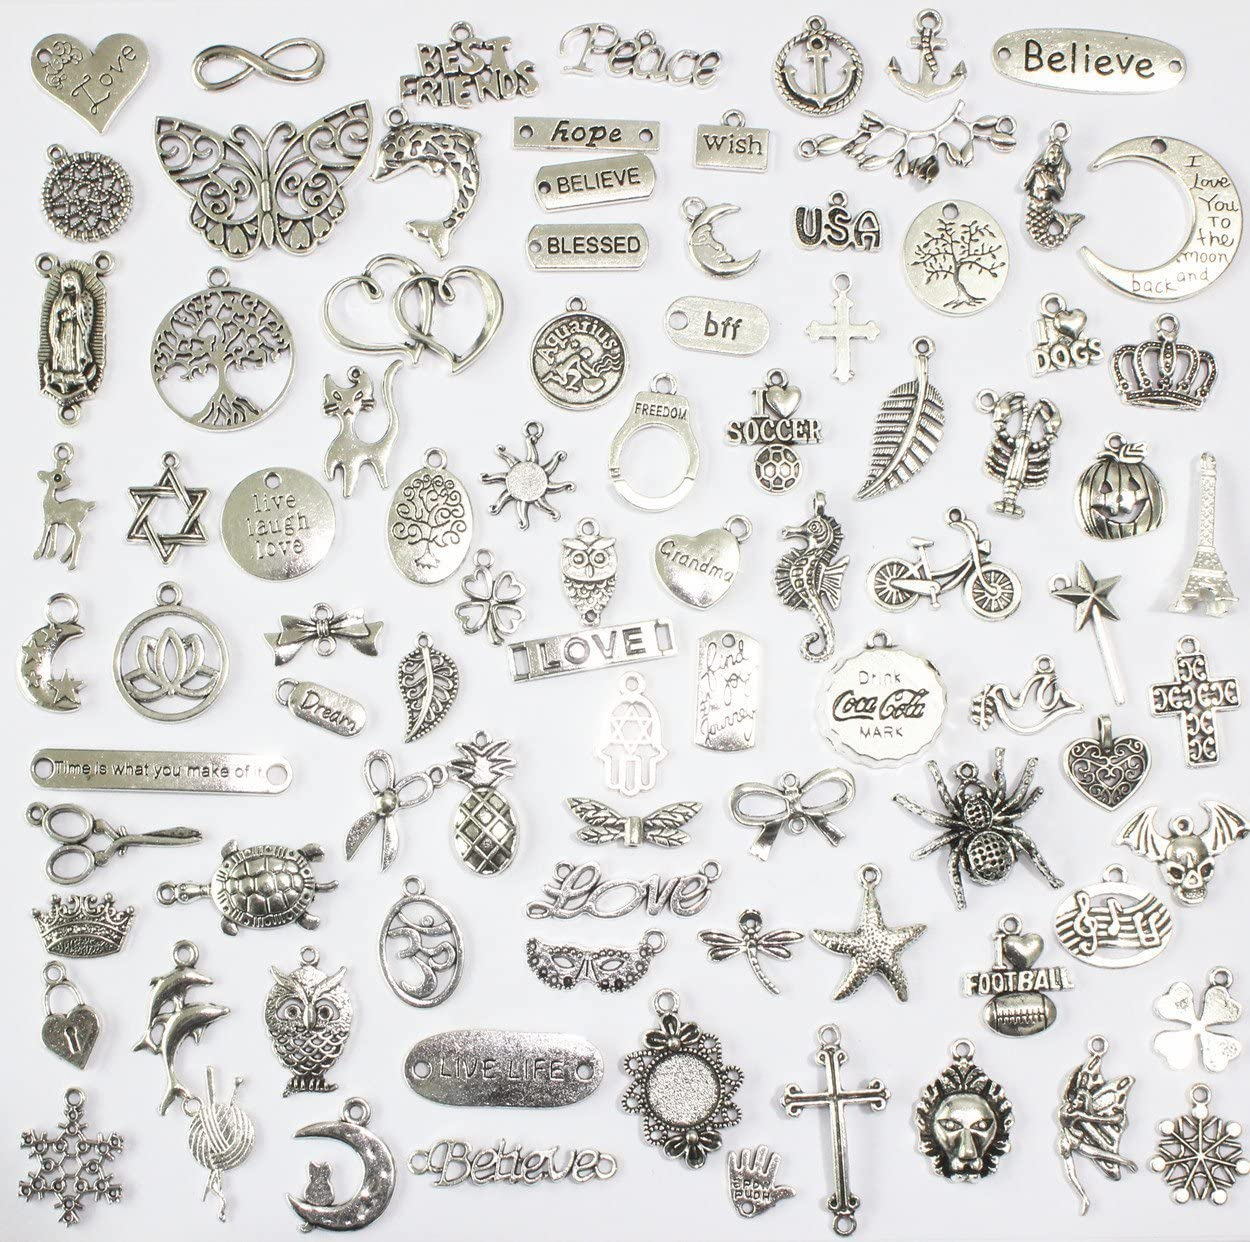 OTAOTP 450 Pcs Jewelry Making Silver Charms,Bracelet Charms,Antique Alloy Charms Pendants,Jewelry Making Accessories Crafting Supplies for DIY Necklace Bracelet Silver and Gold